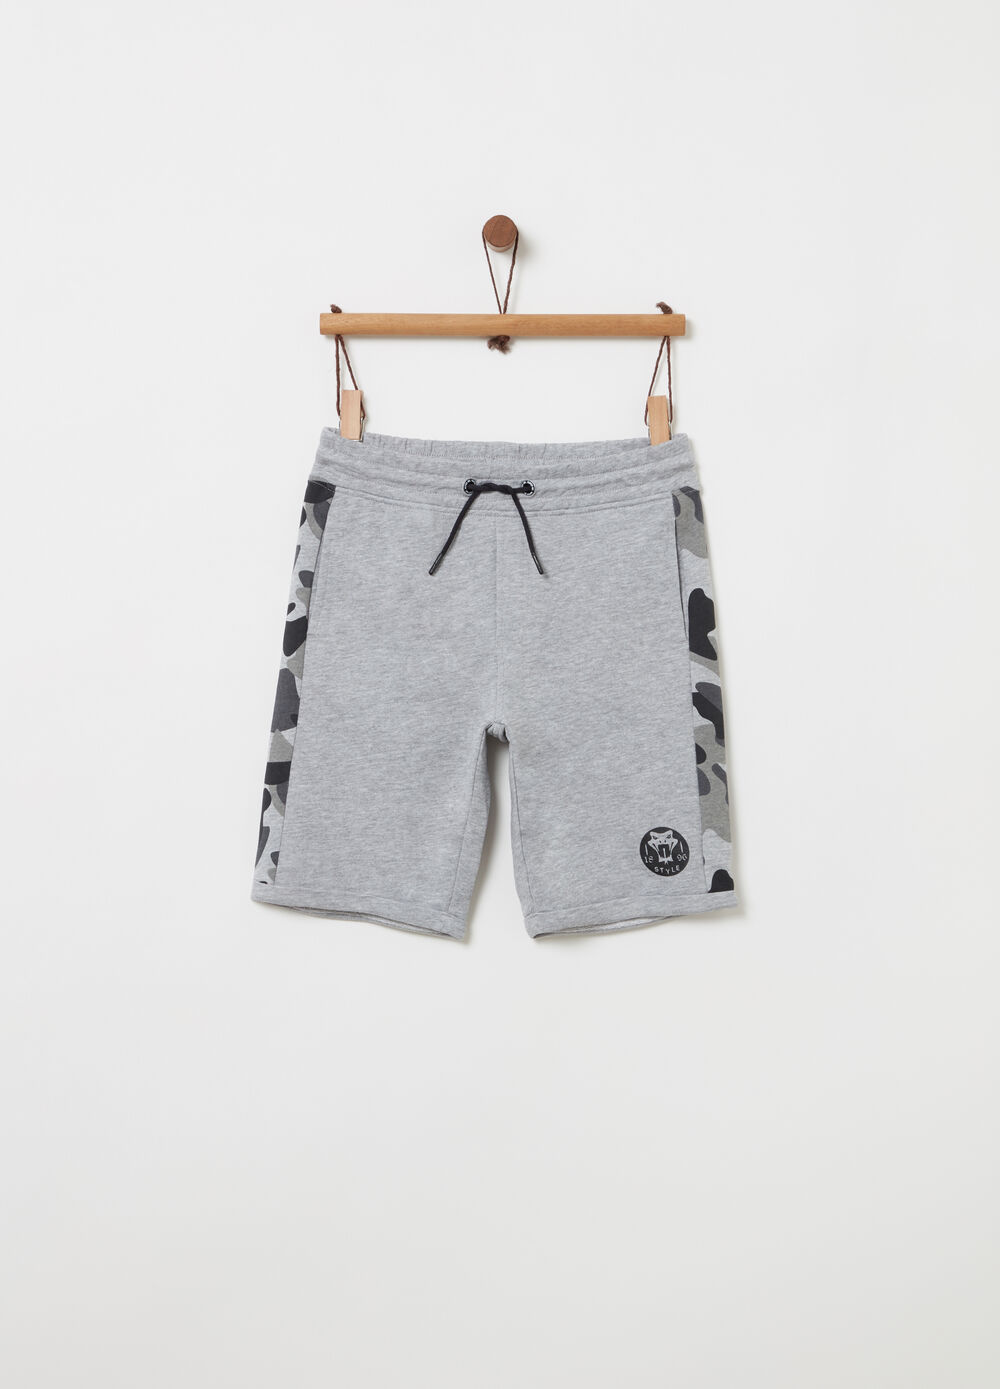 Mélange shorts with camouflage bands